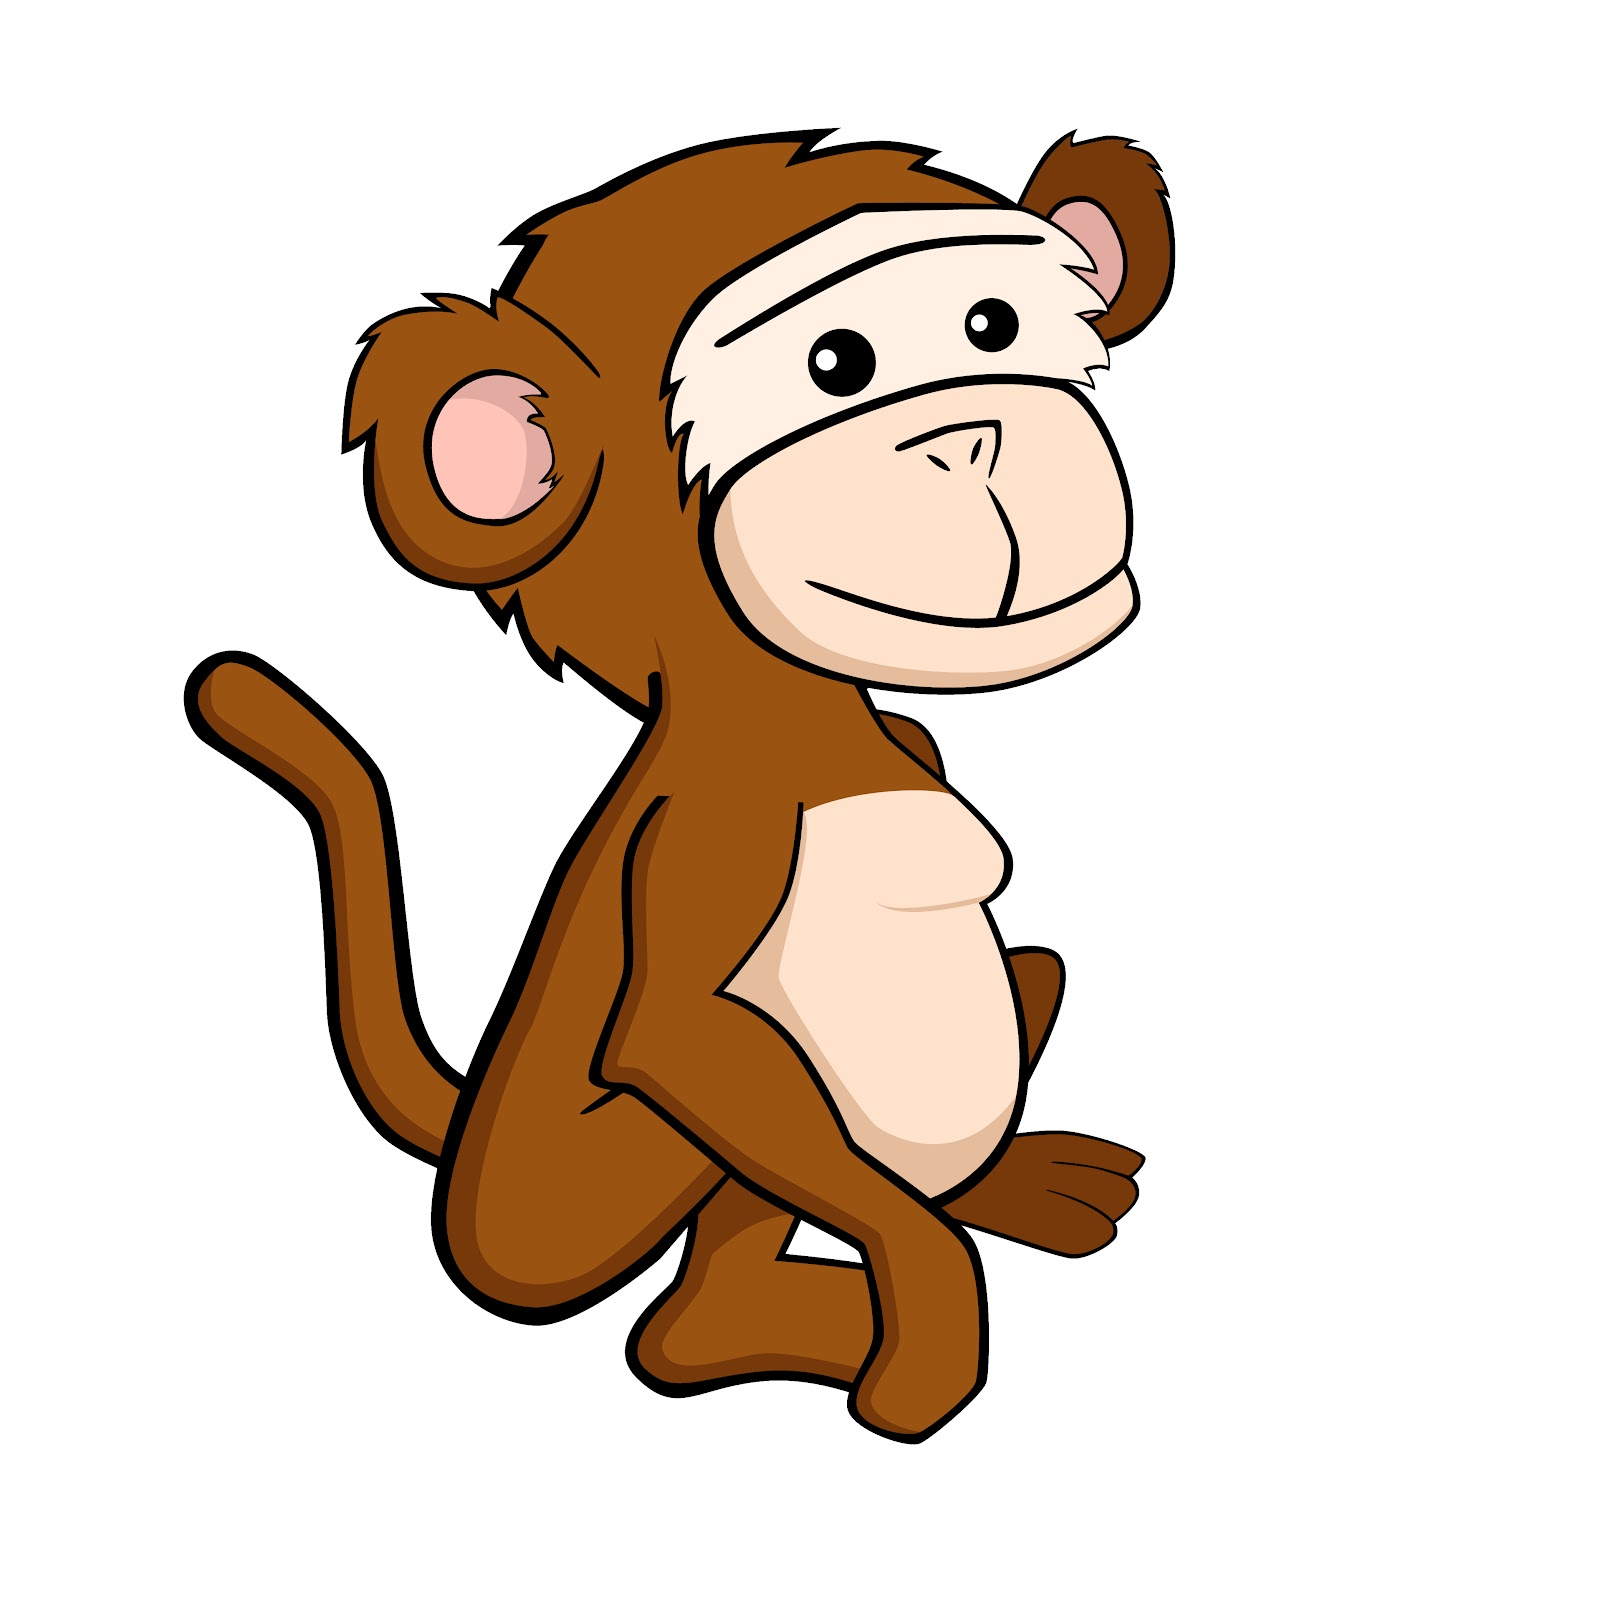 Monkey vector free download